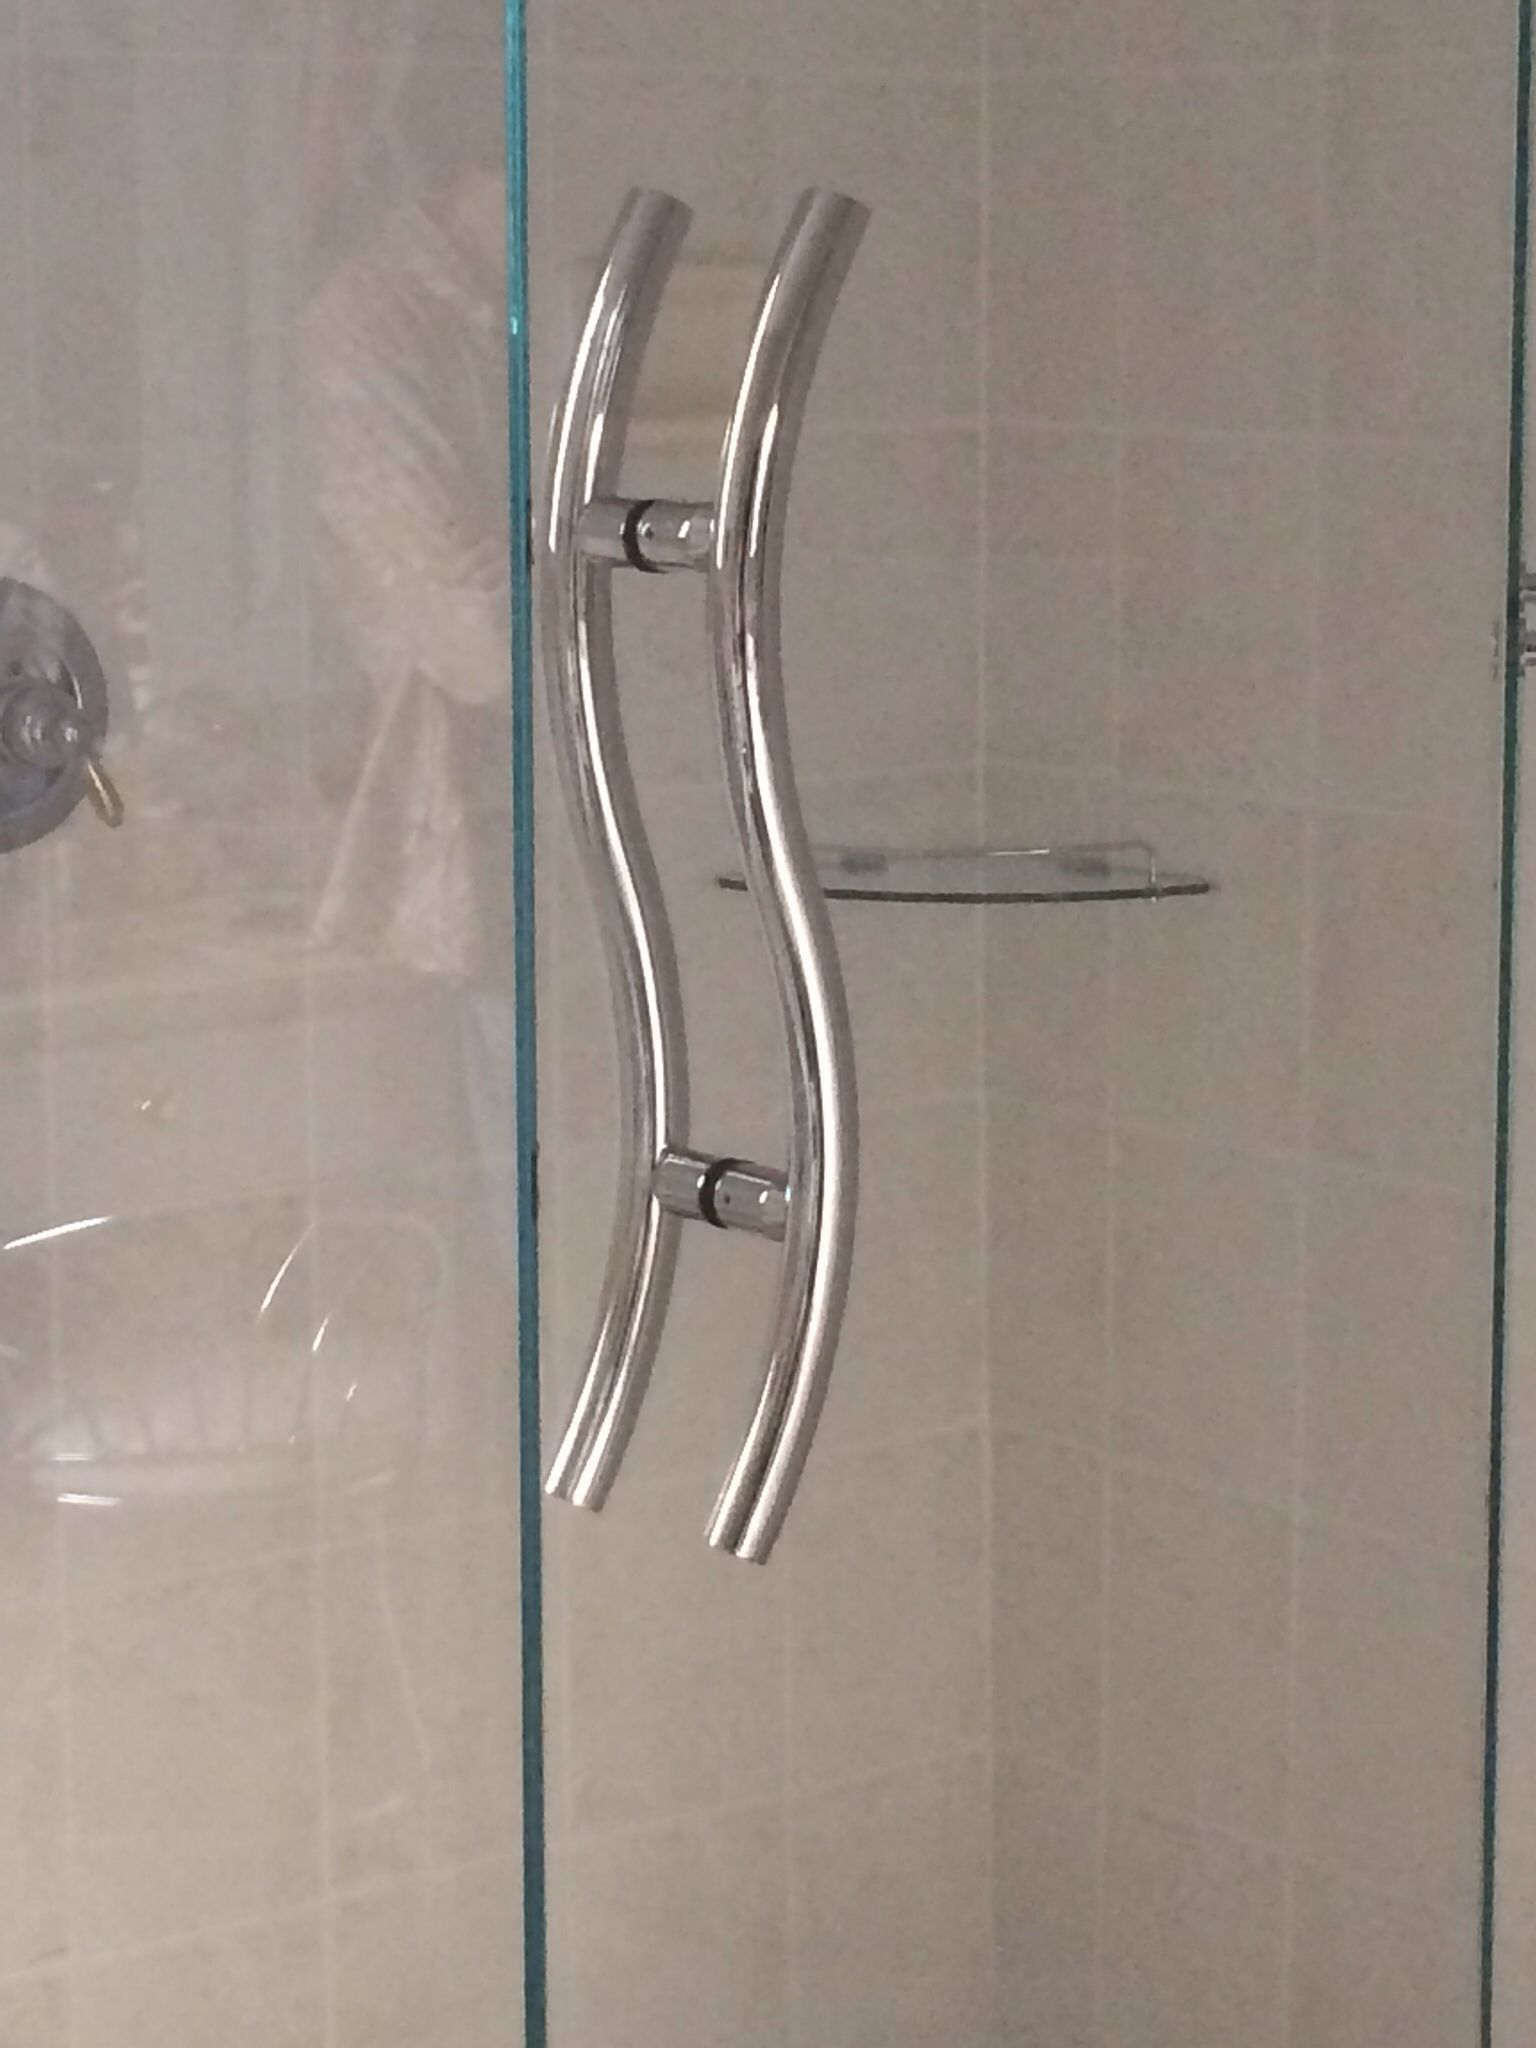 24 S Curved Handle In Polished Chrome Shower Door Handles Shower Doors Bathroom Design Concepts